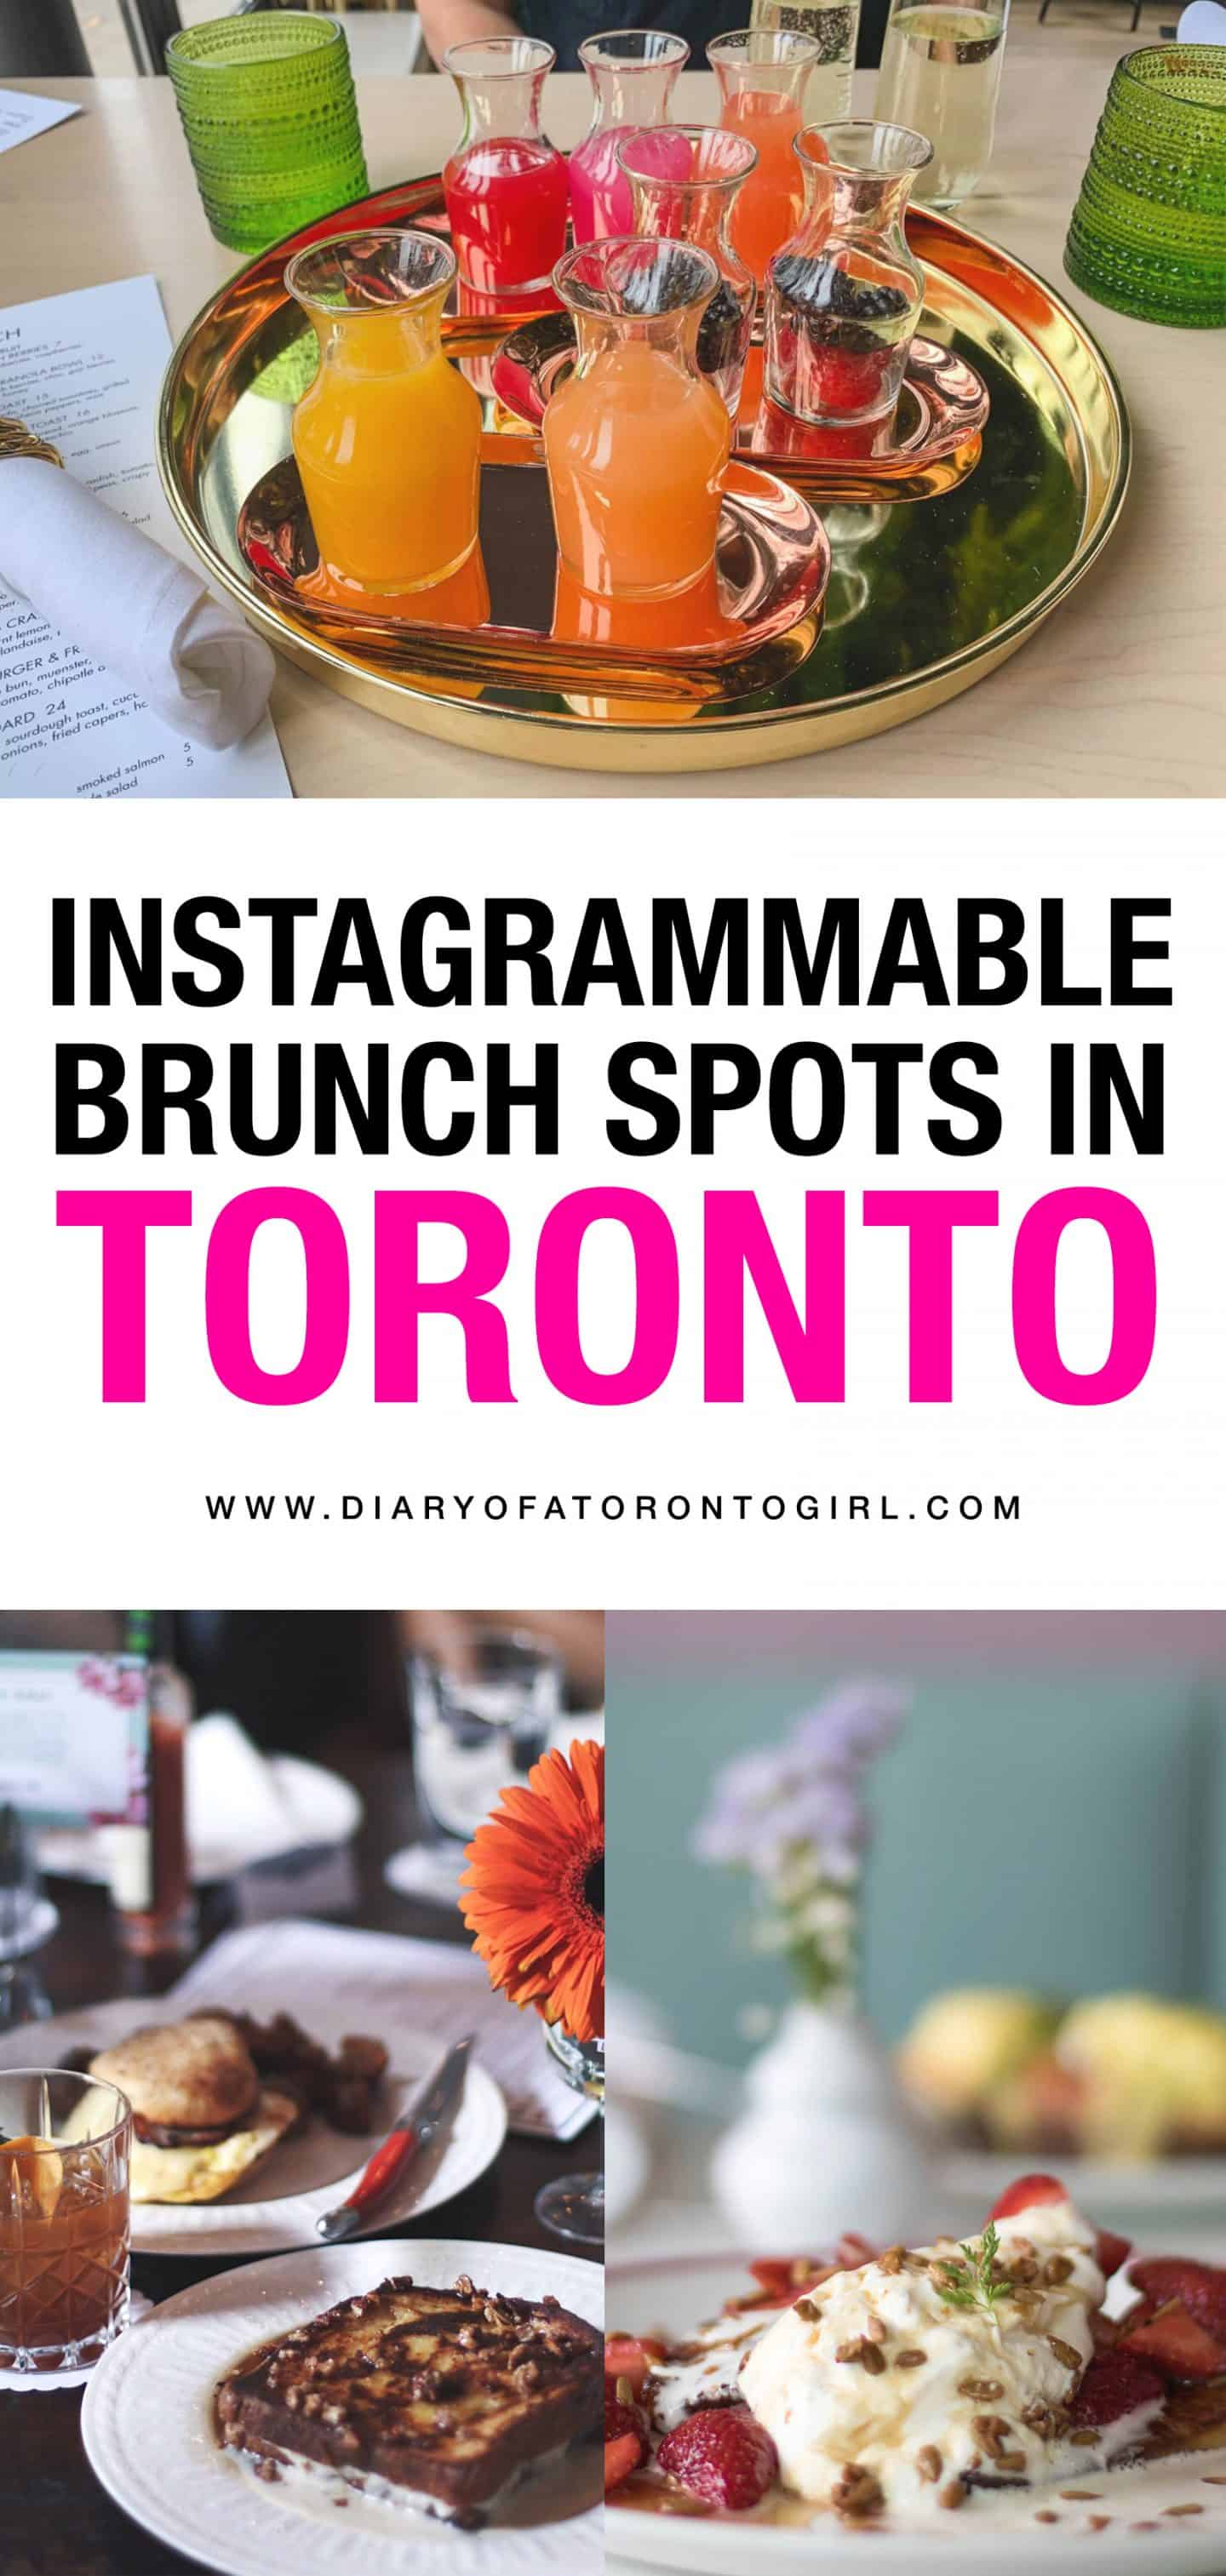 From healthy vegan chia seed pudding to hearty blueberry pancakes, you'll find all kinds of wonderful brunch spots in Toronto. Here are some of the best places to grab breakfast and brunch in the city!